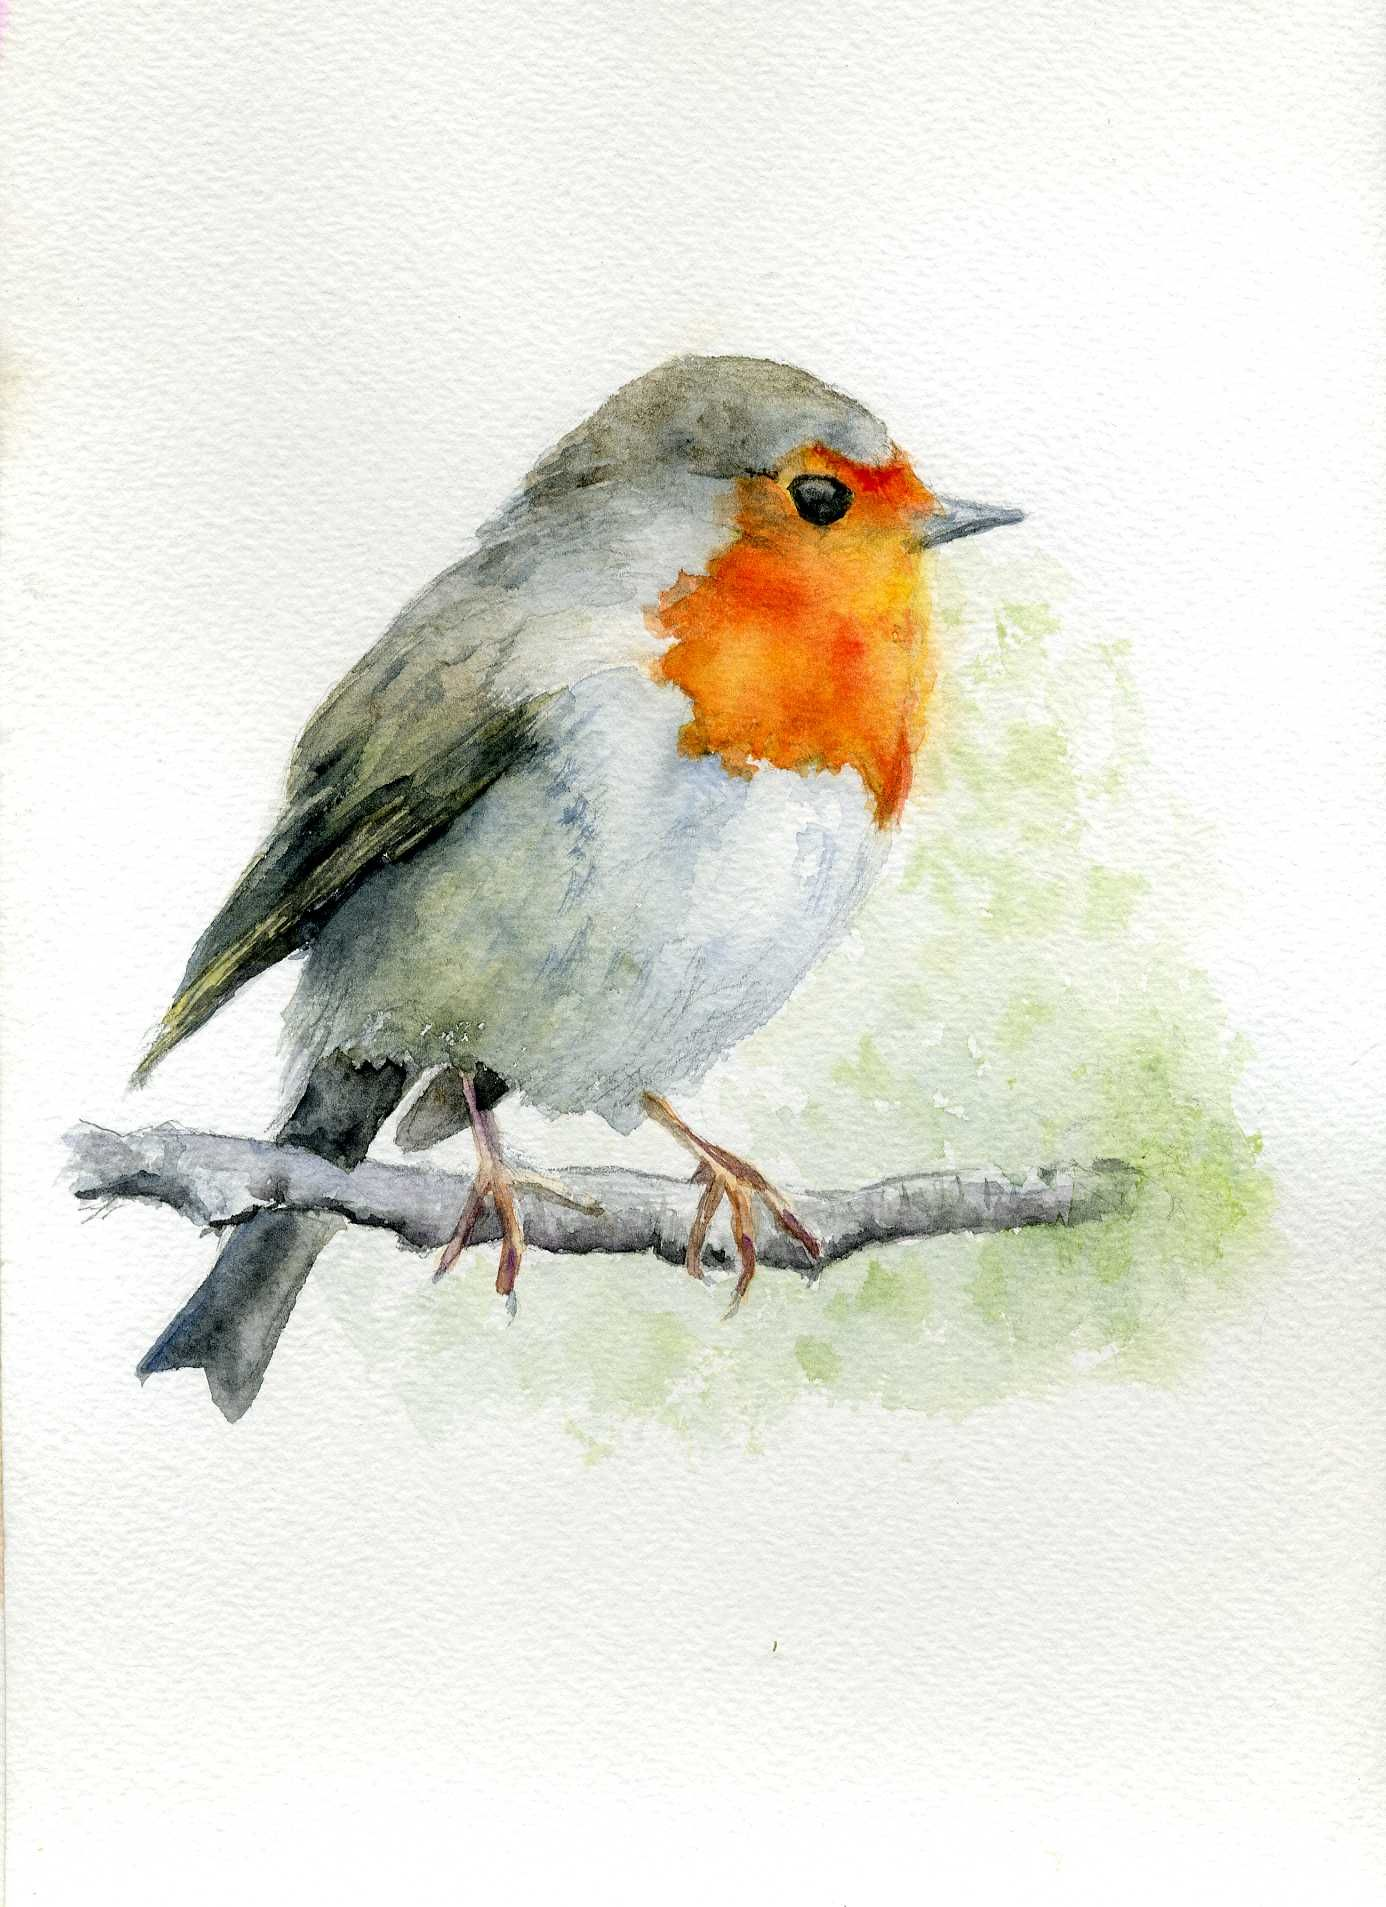 Dibujar Pajaros Buscar Con Google Watercolor Bird Watercolor